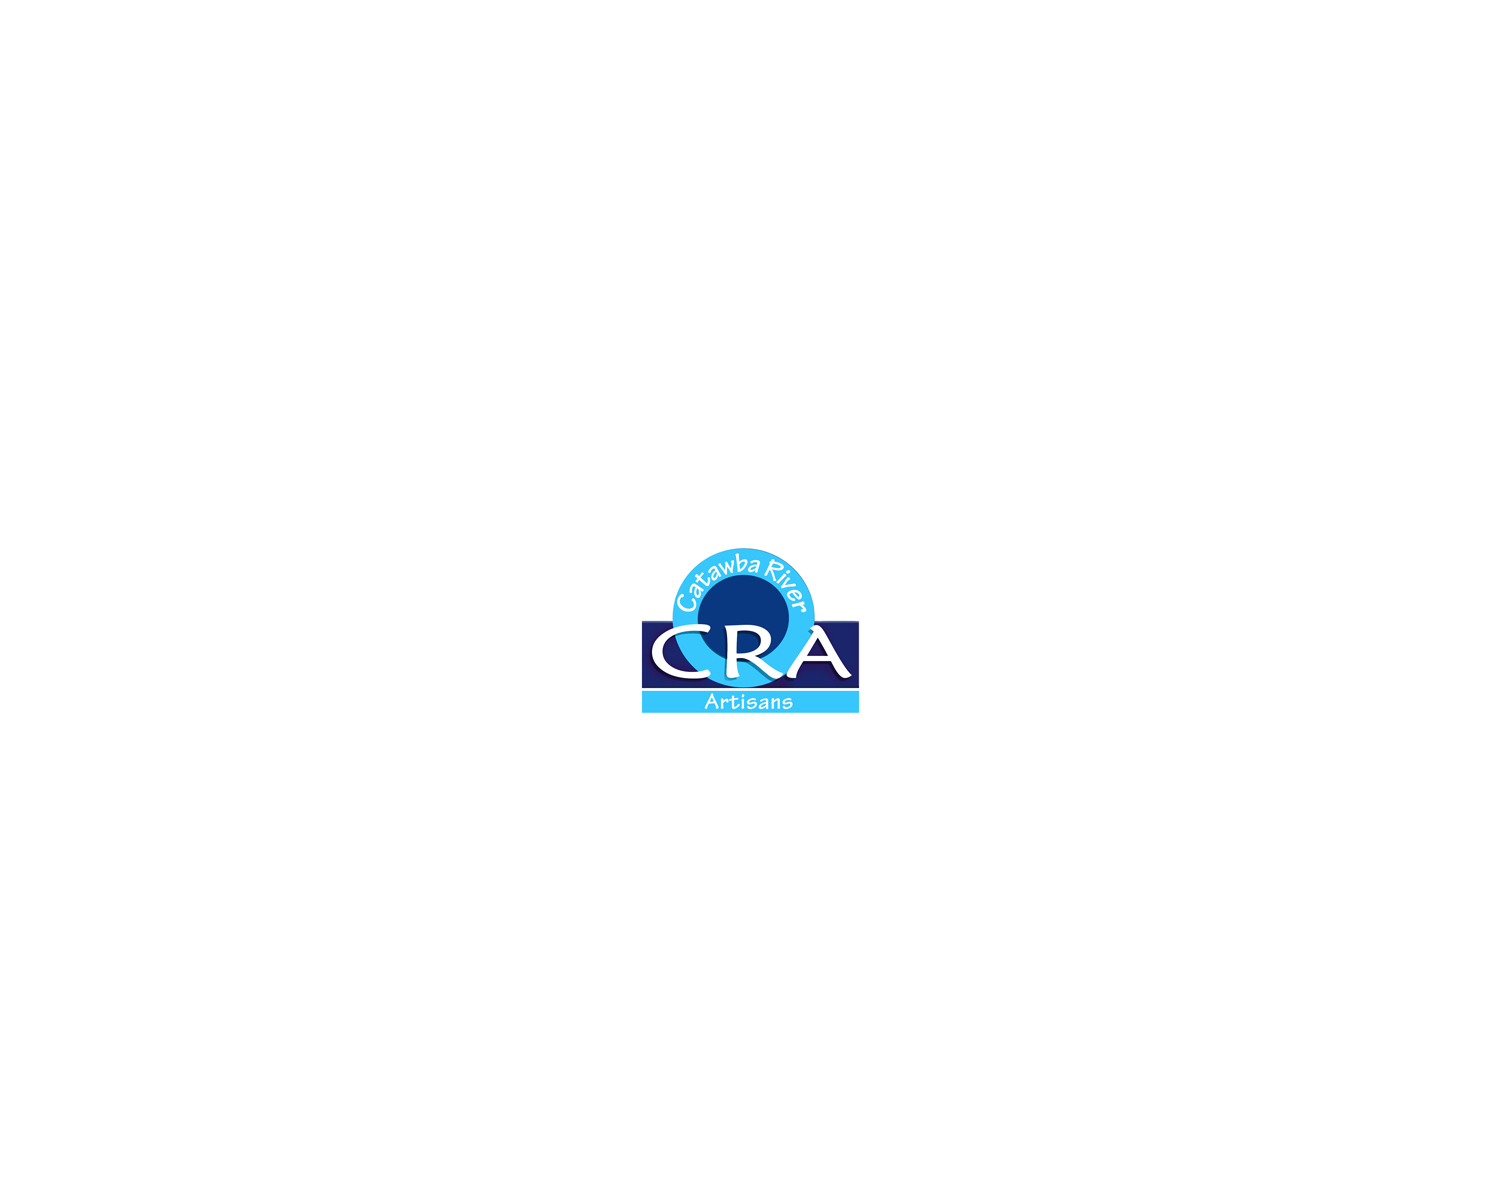 CRA logo on white02.jpg